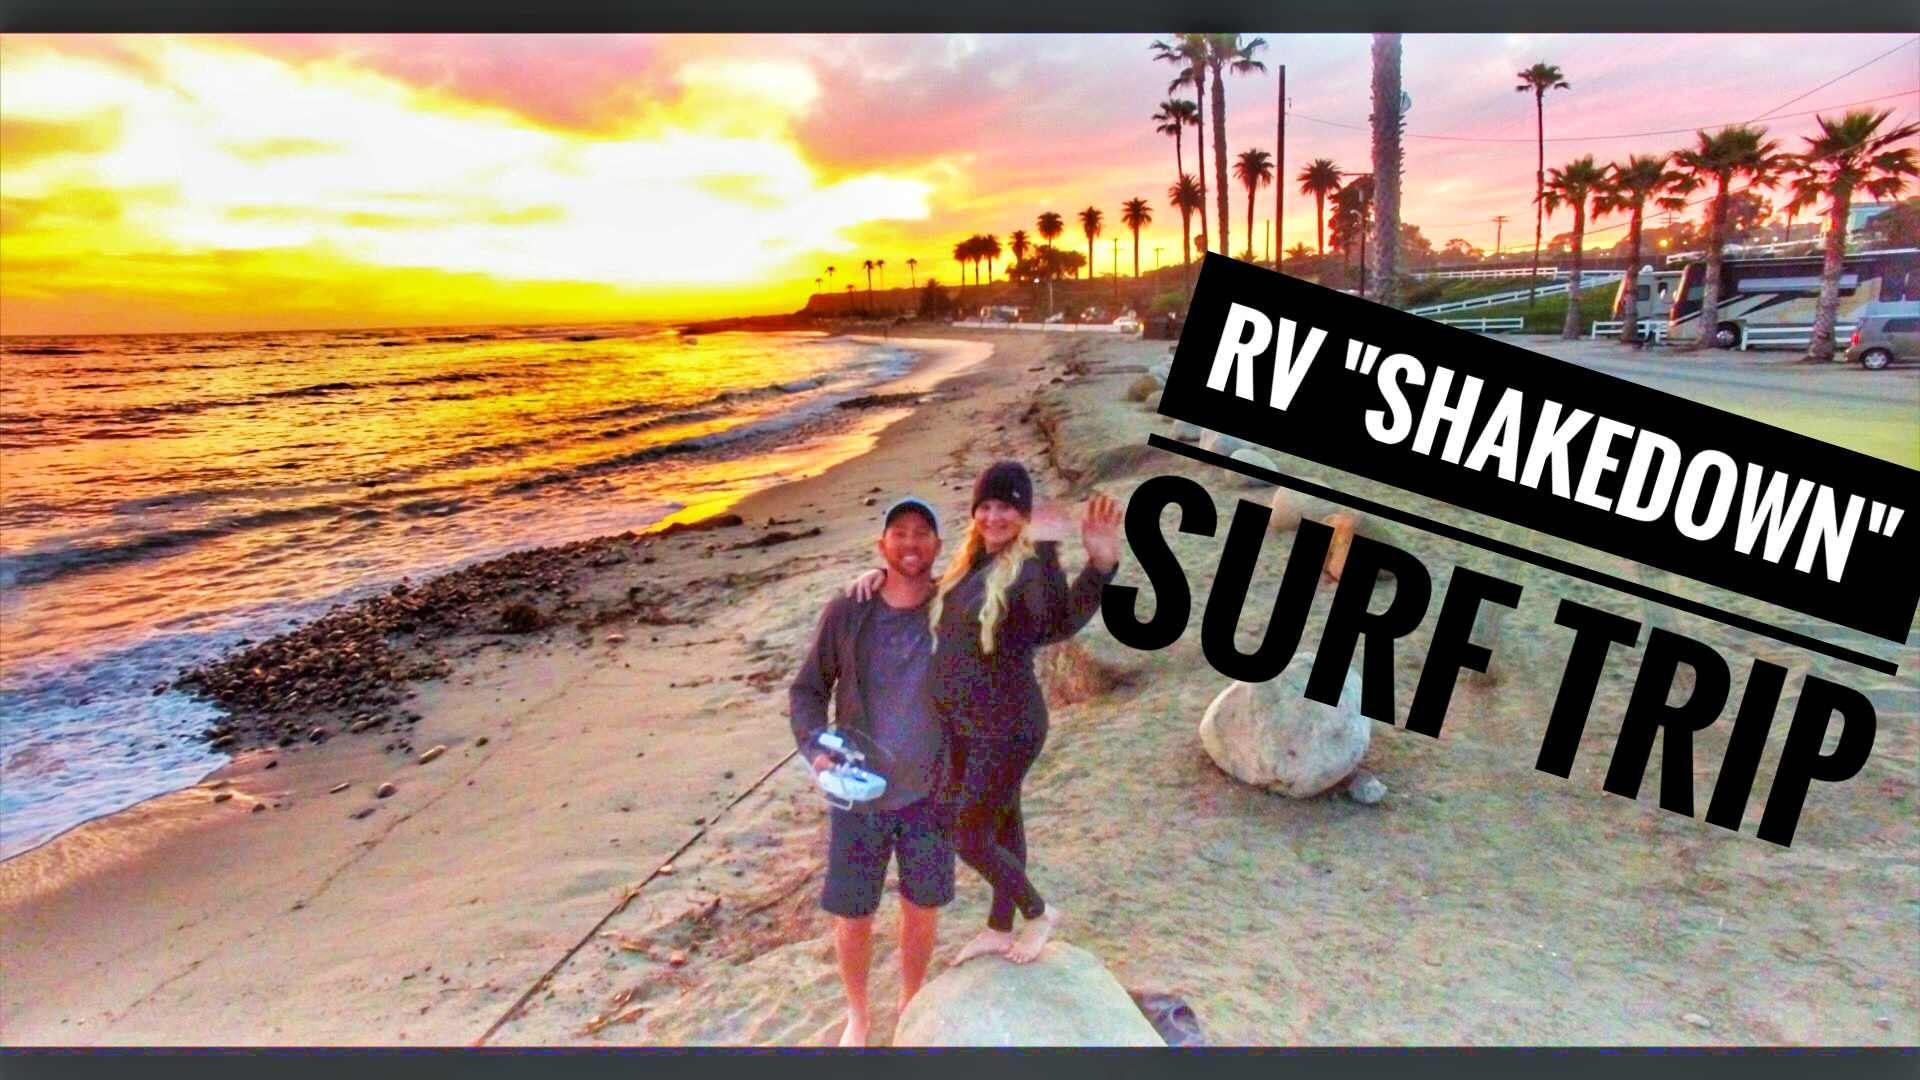 RV Shakedown Surf Trip – taking our first RV trip –